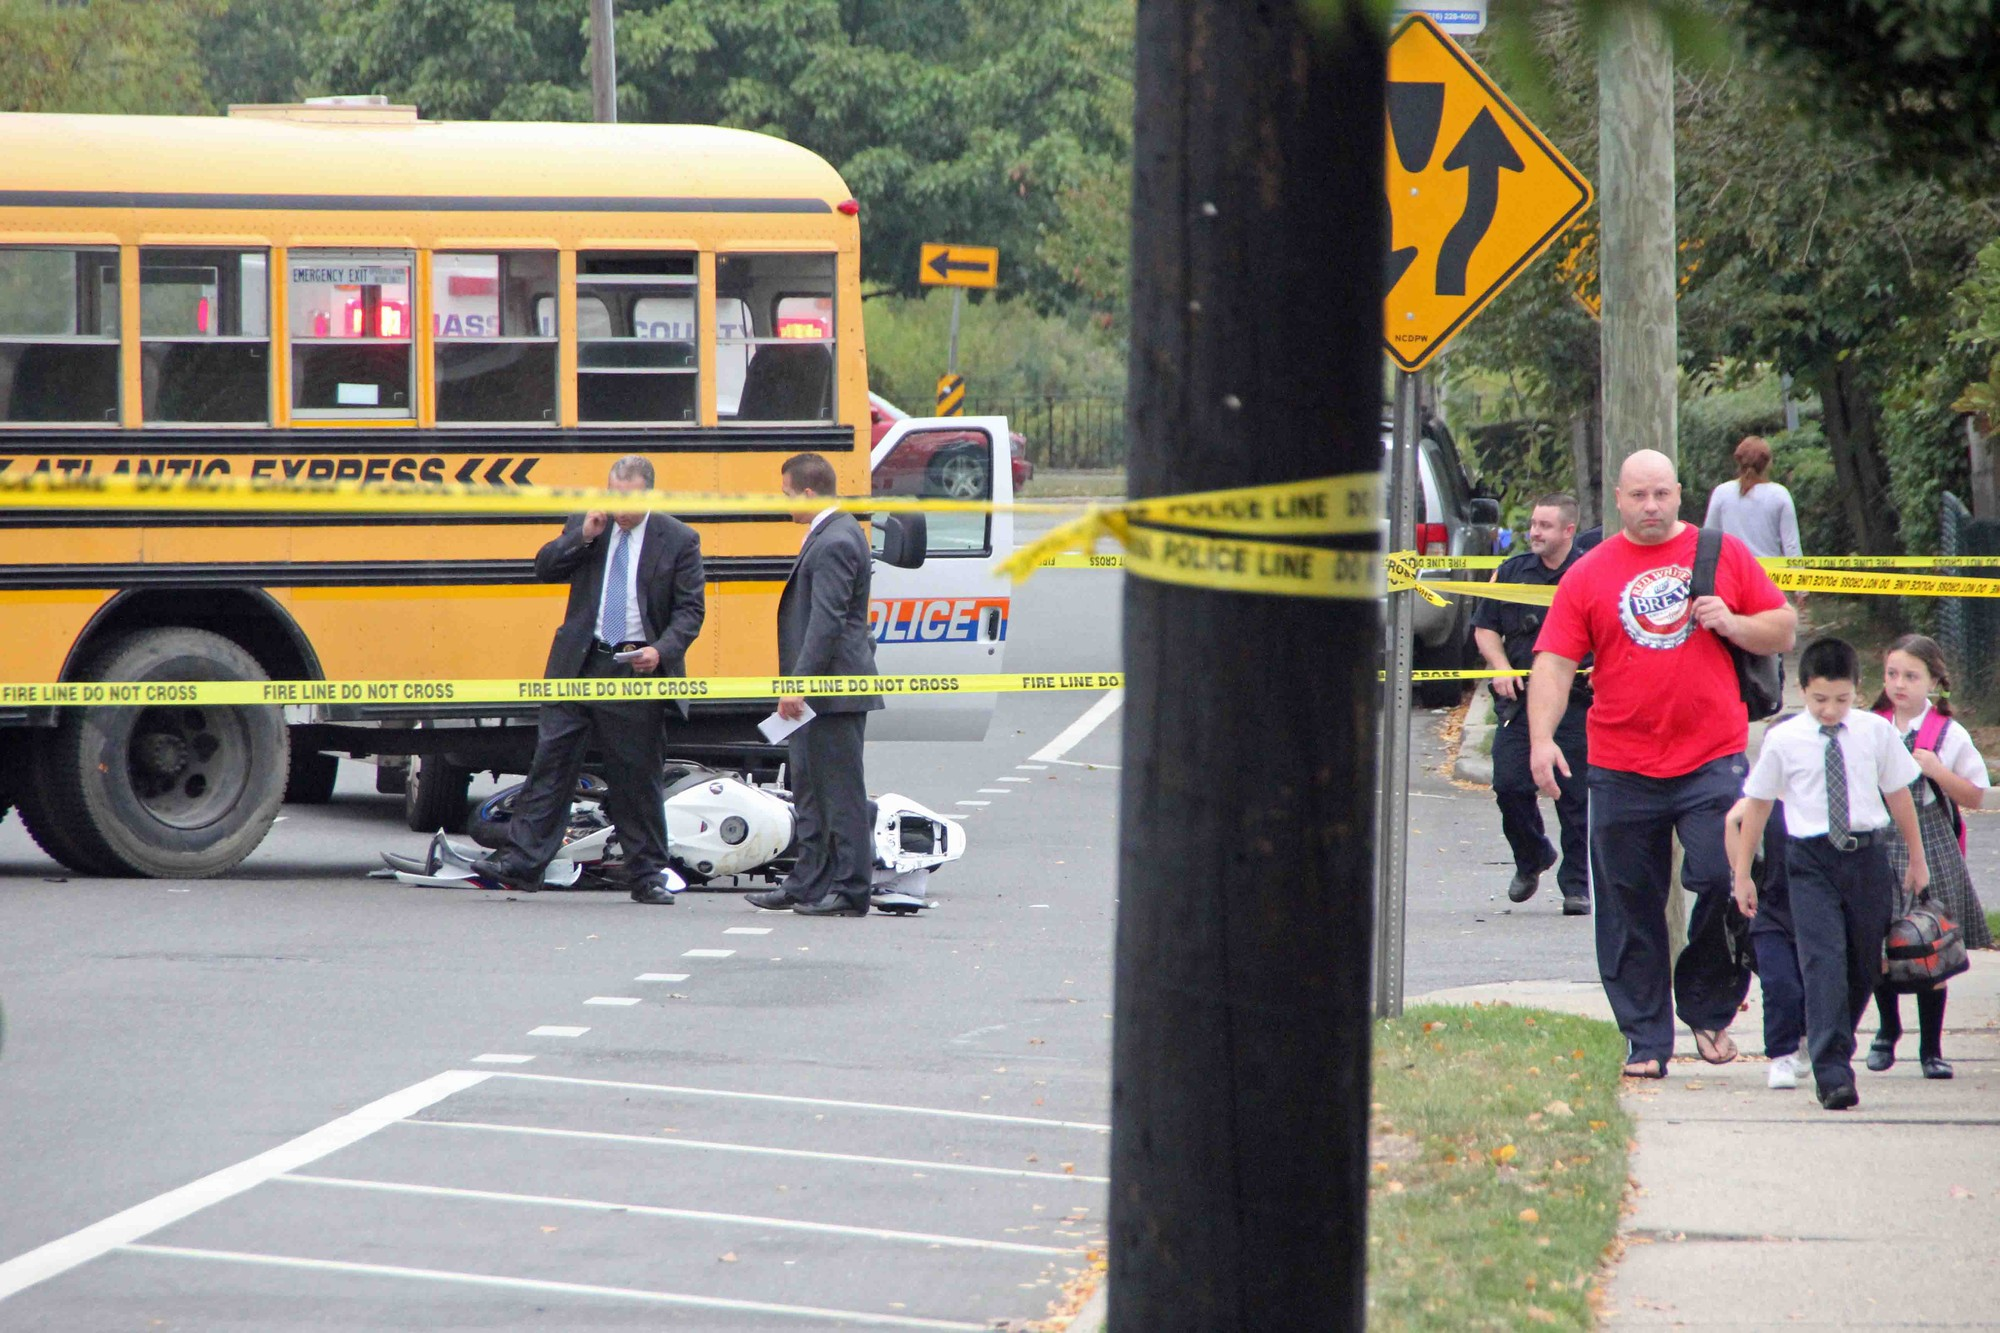 A motorcycle rider crashed into a school bus near the corner of Merrick Rd. and Lancaster Avenue this morning.